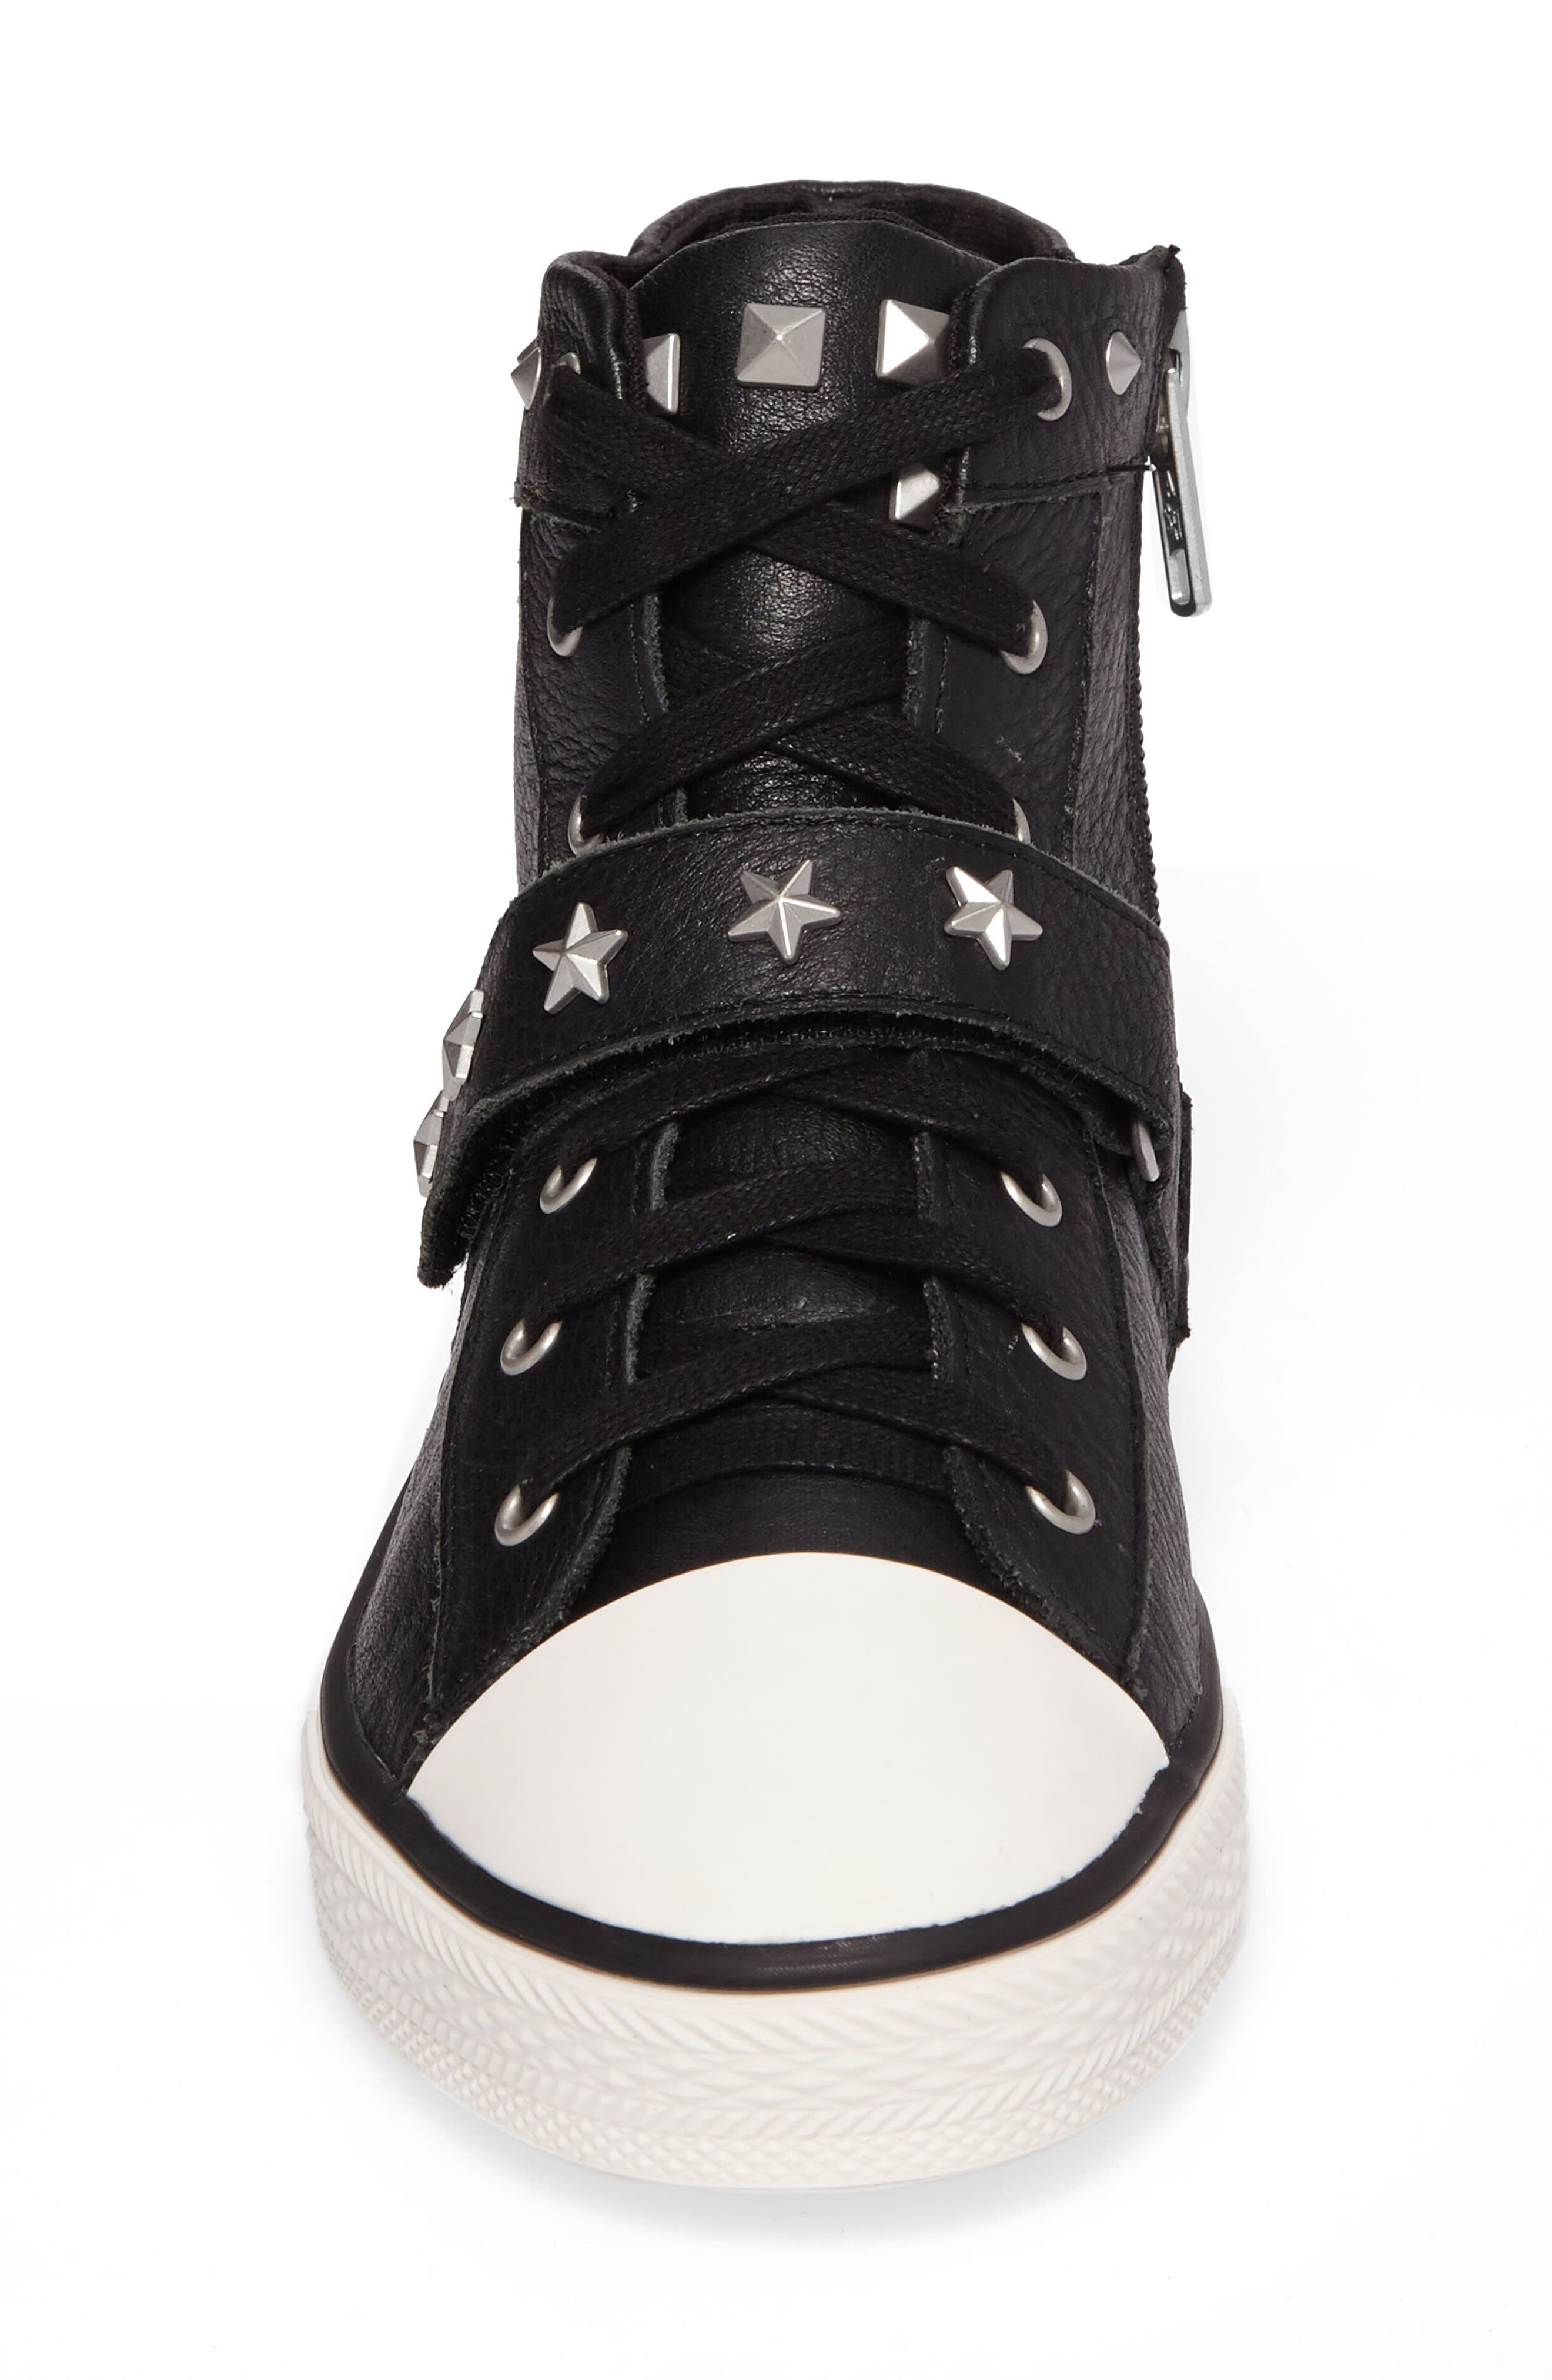 Vava Curve Studded High Top Sneaker,                             Alternate thumbnail 4, color,                             Black Leather